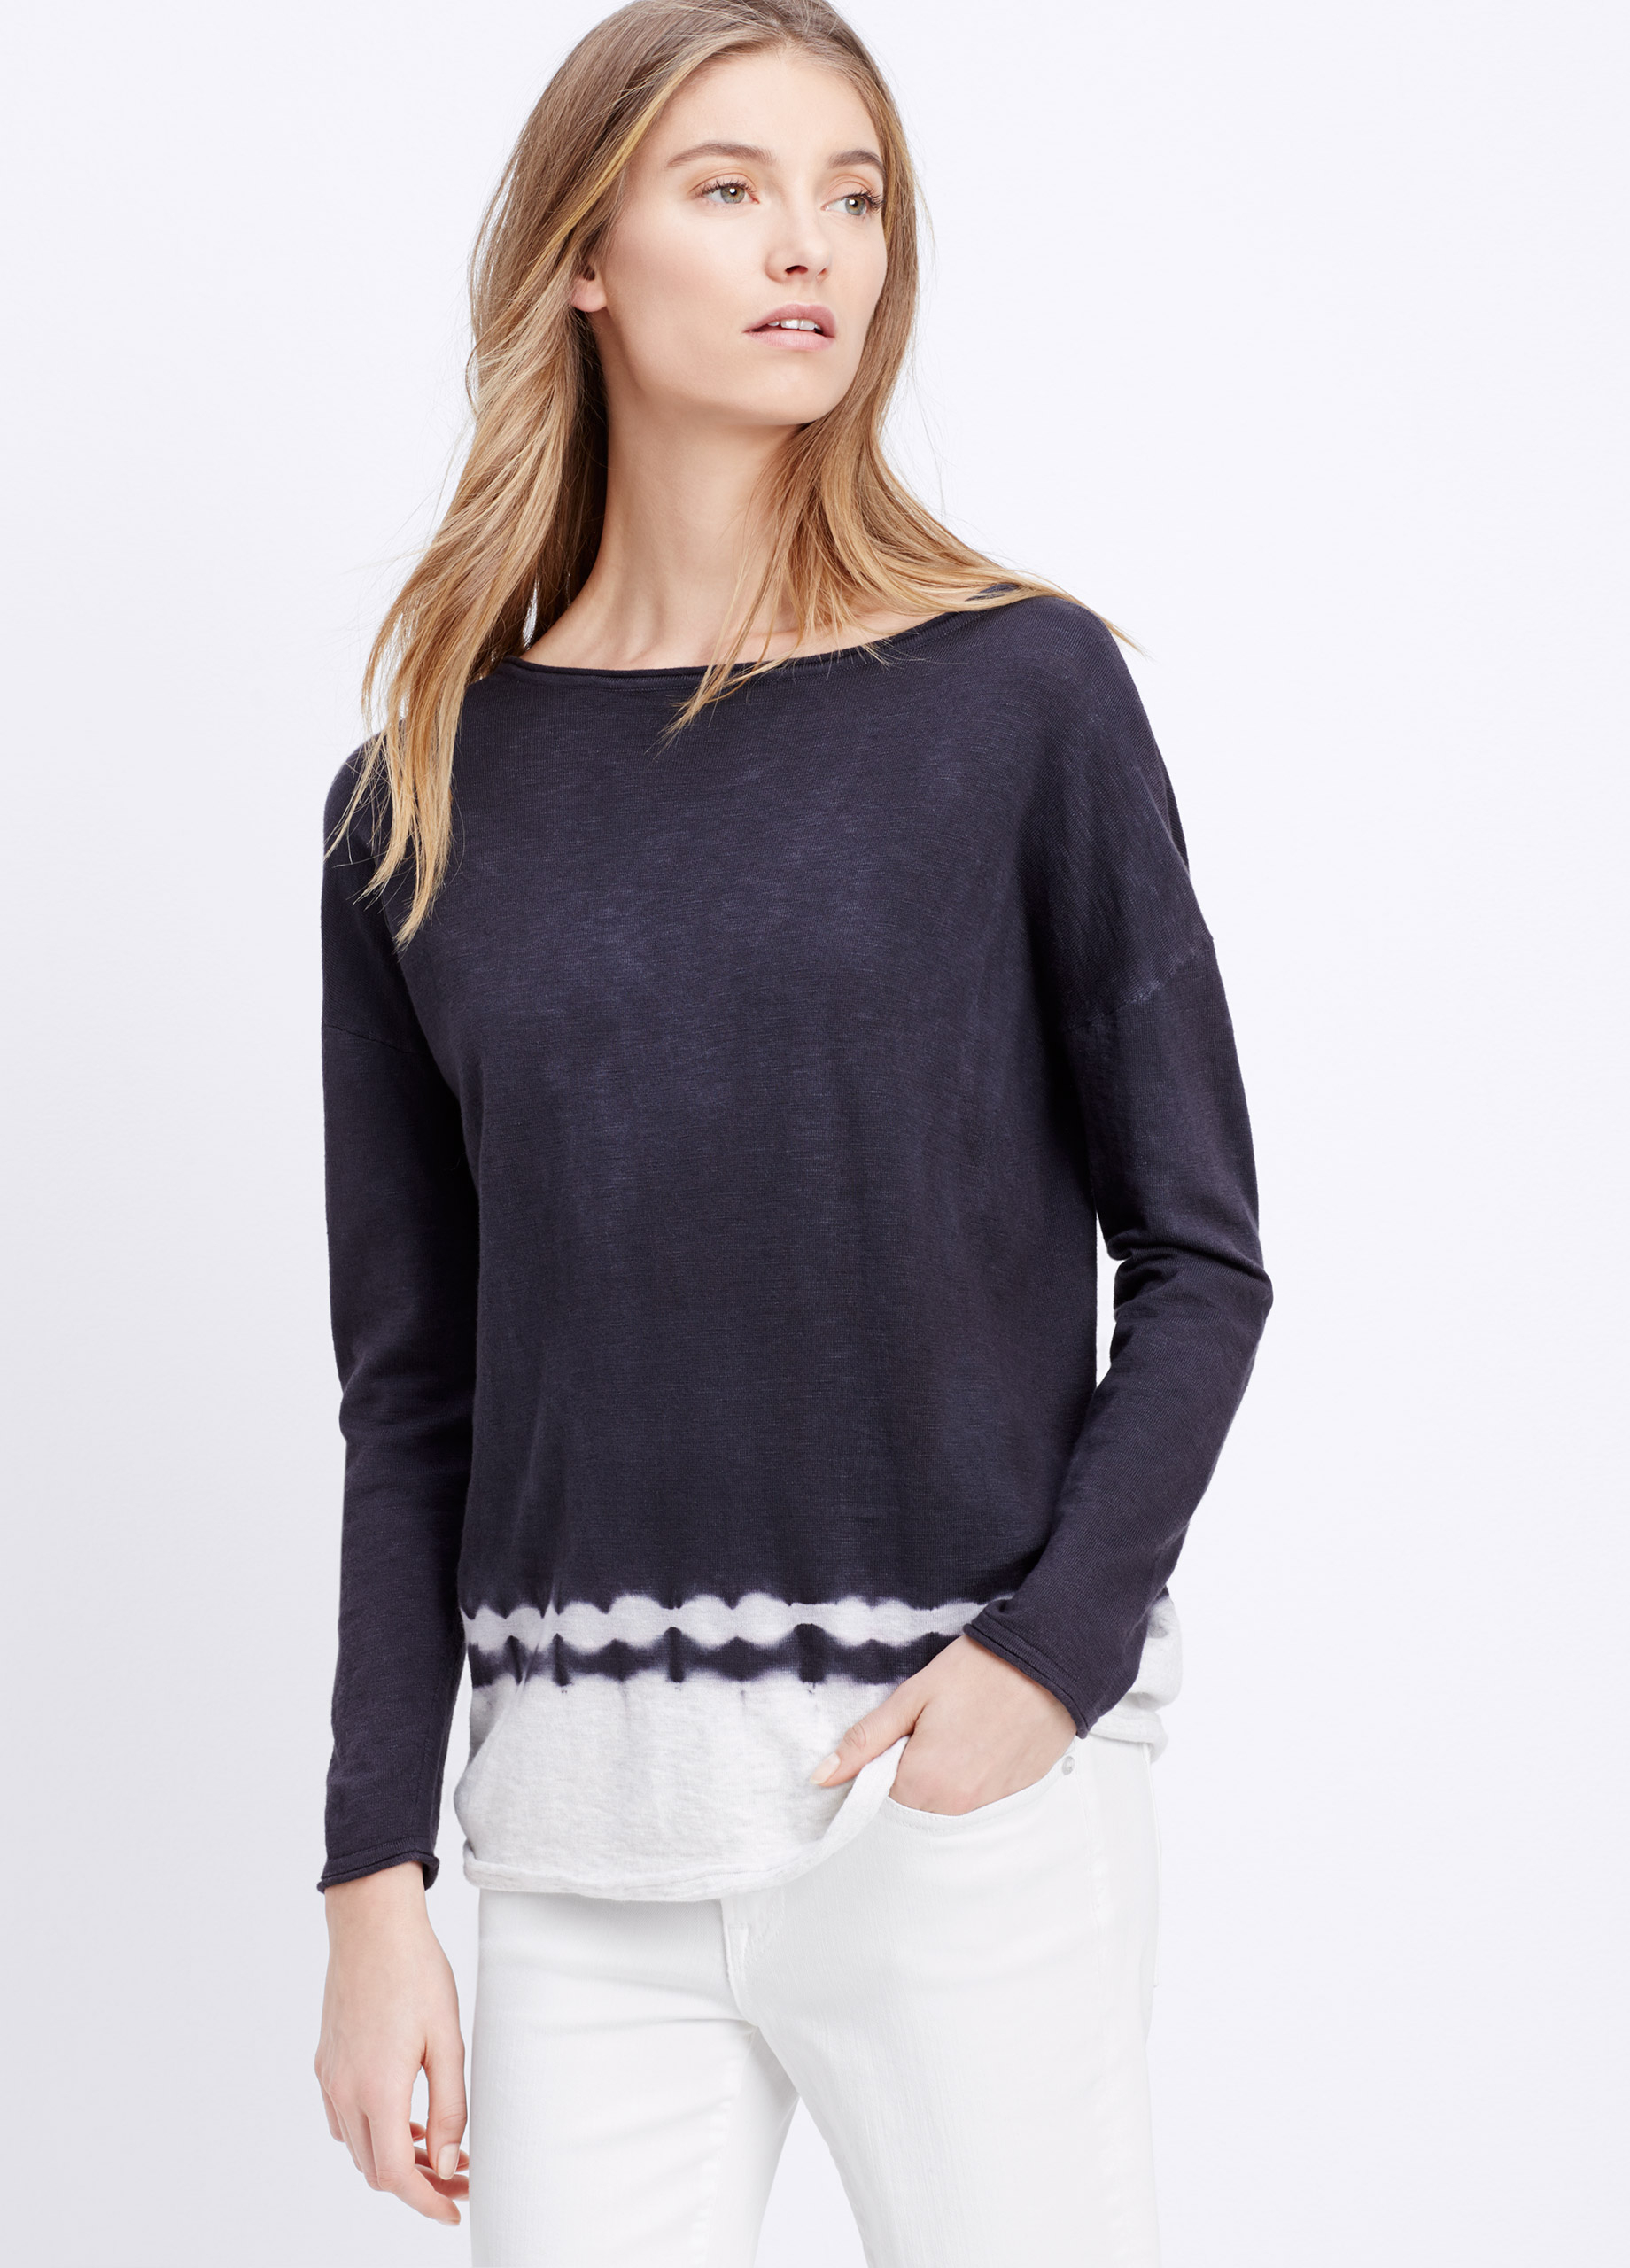 Vince Slub Cotton Tie Dye Long Sleeve Boatneck Sweater in Black | Lyst